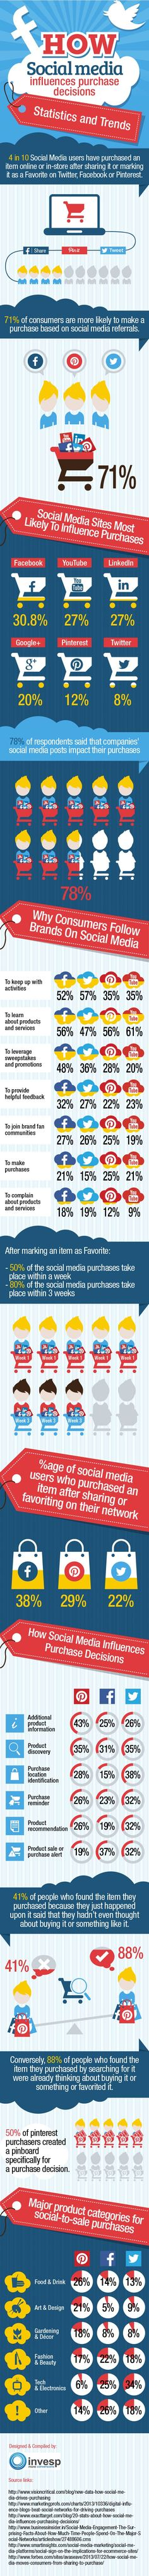 How #SocialMedia Influences Purchase Decisions – Statistics And Trends #Infographic #SMM